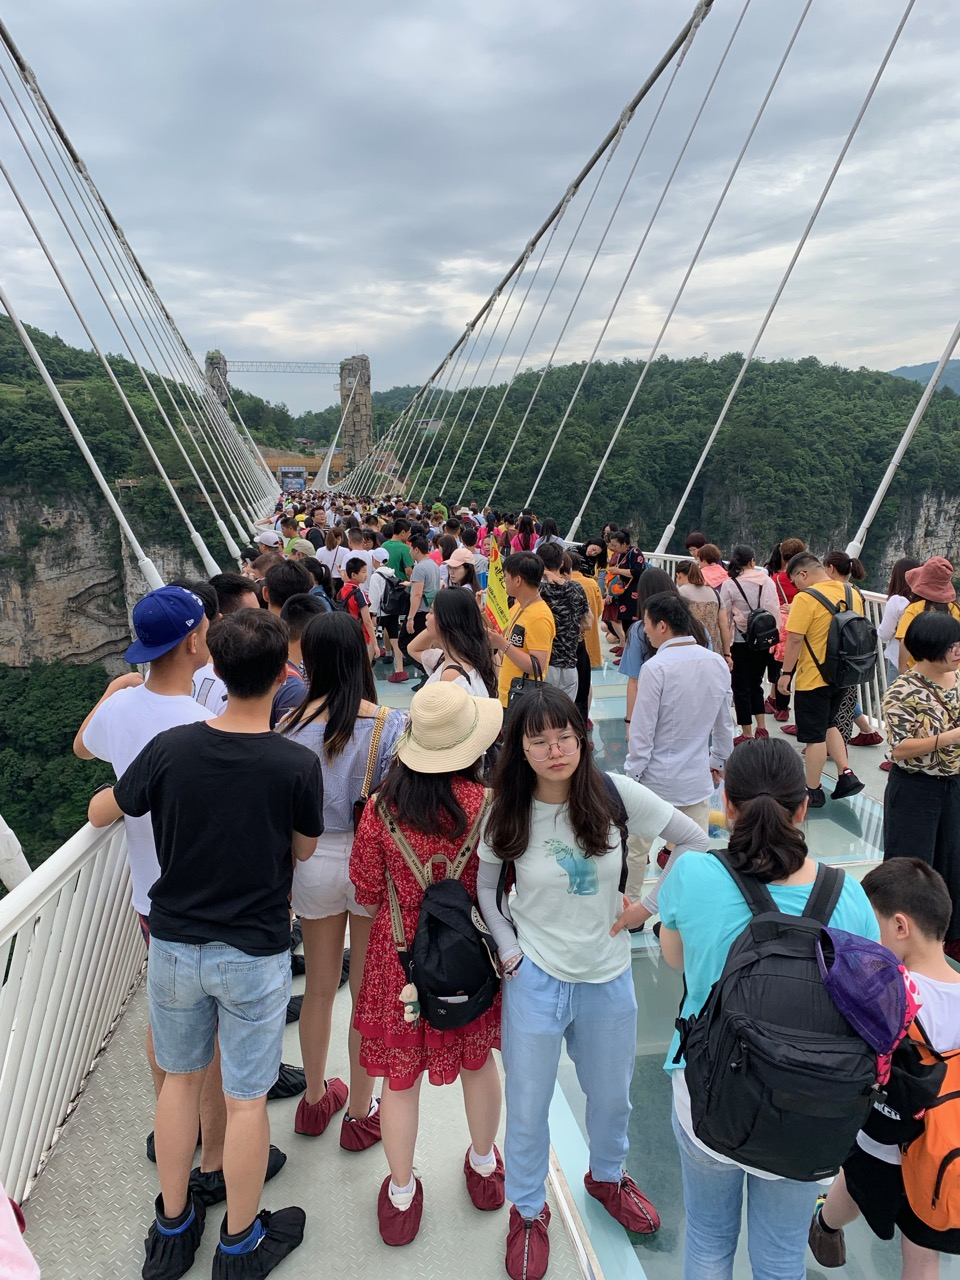 The glass bridge is a fun walk if you don't mind crowds!